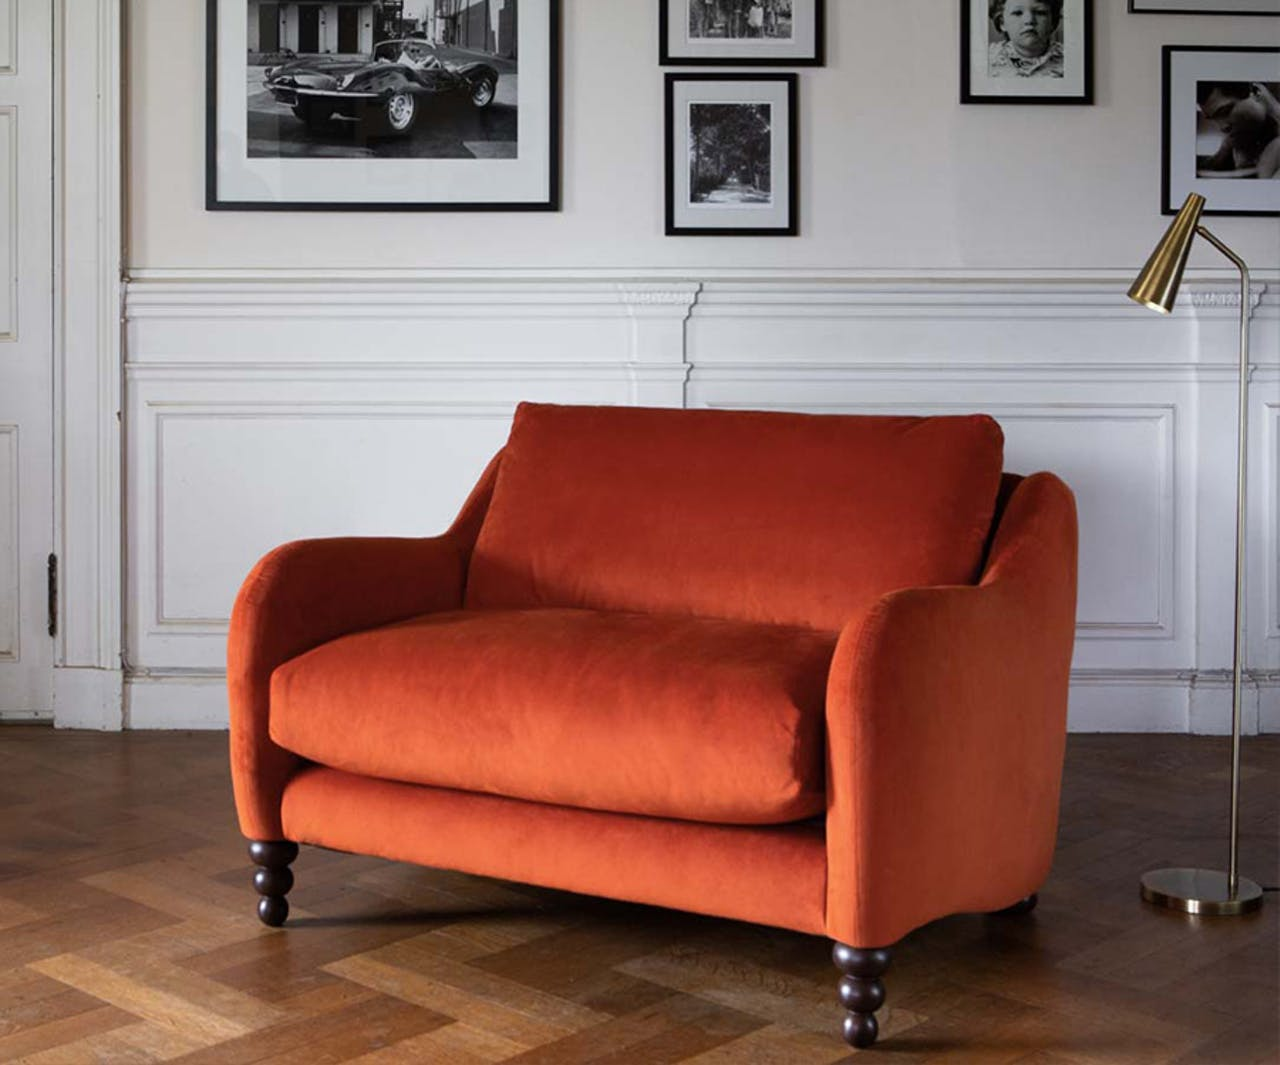 Orange Velvet Love Seat in front of picture wall